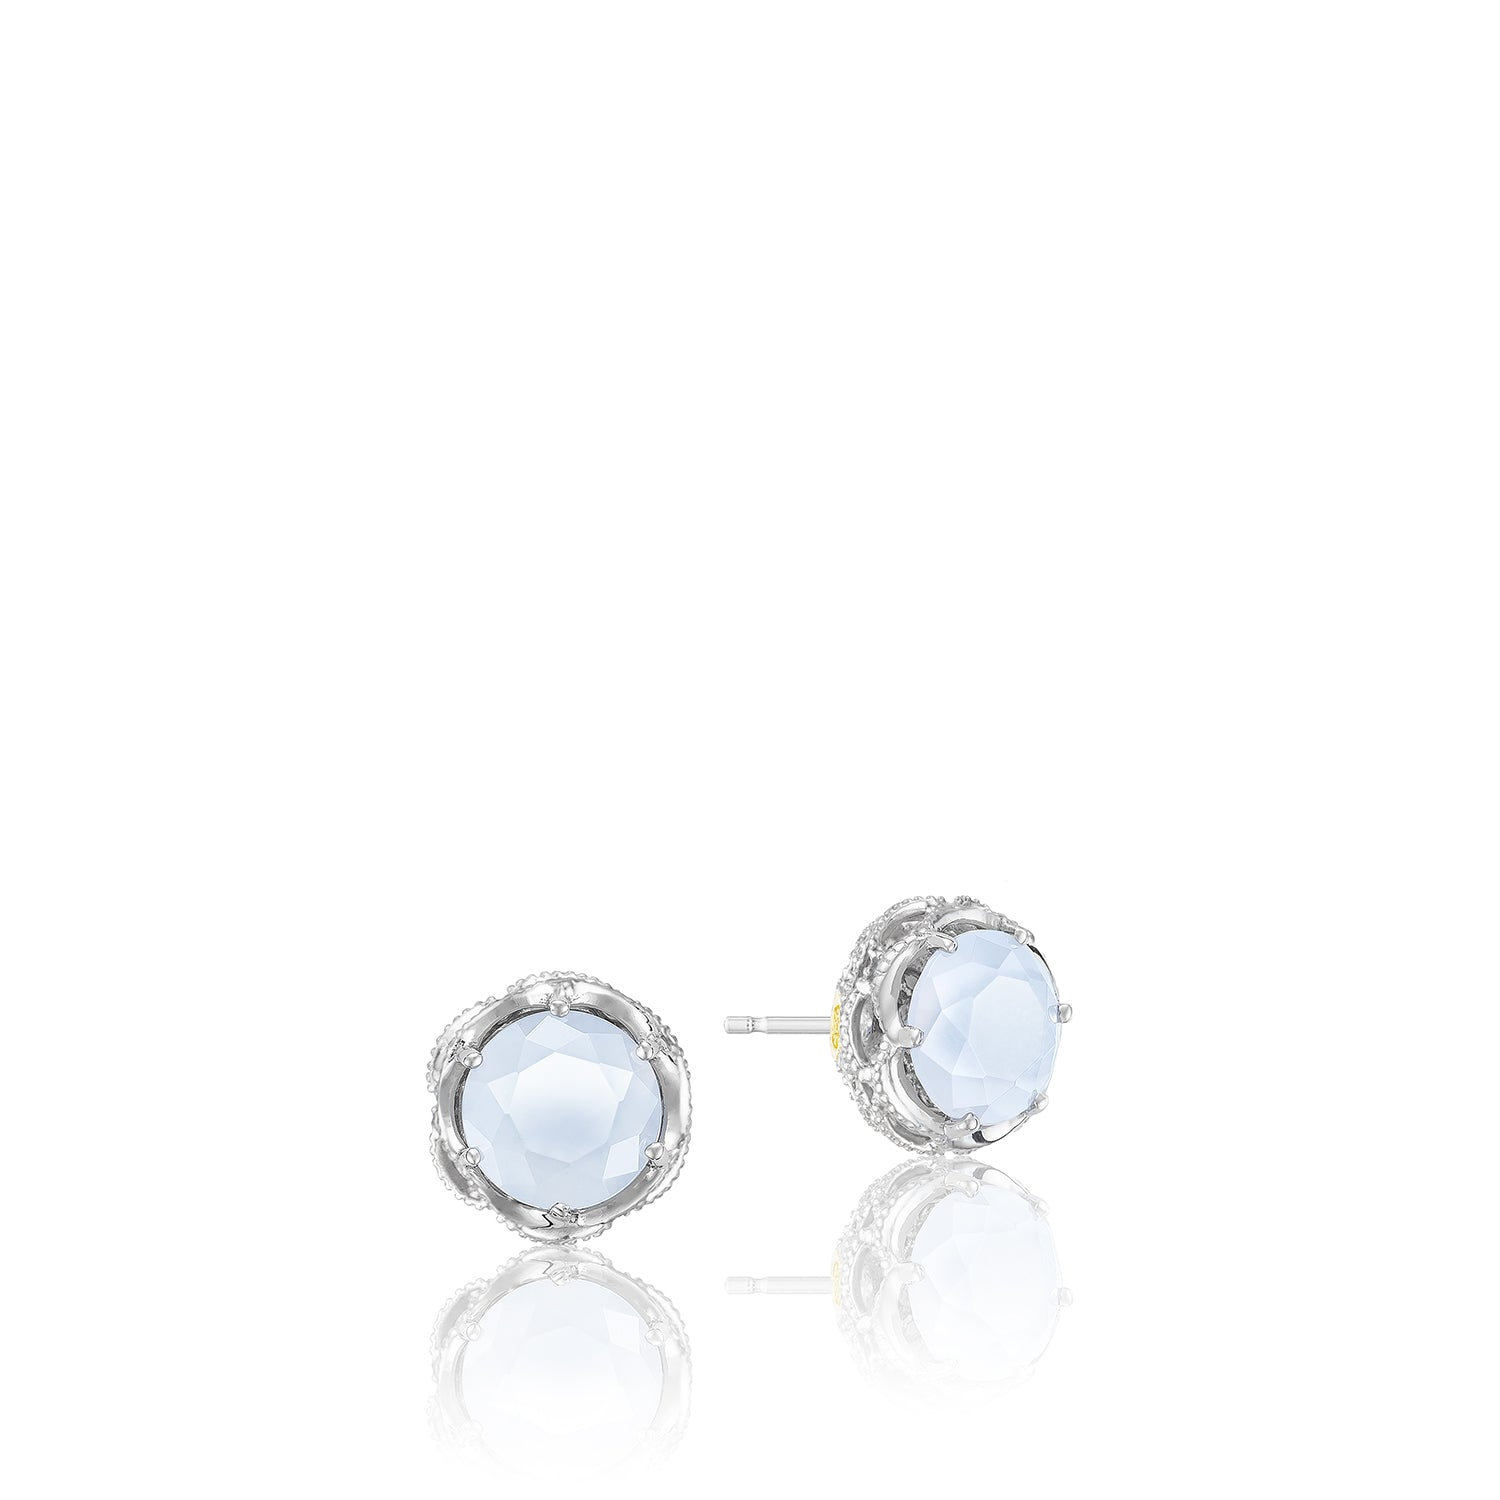 Tacori Crescent Crown Studs featuring Chalcedony